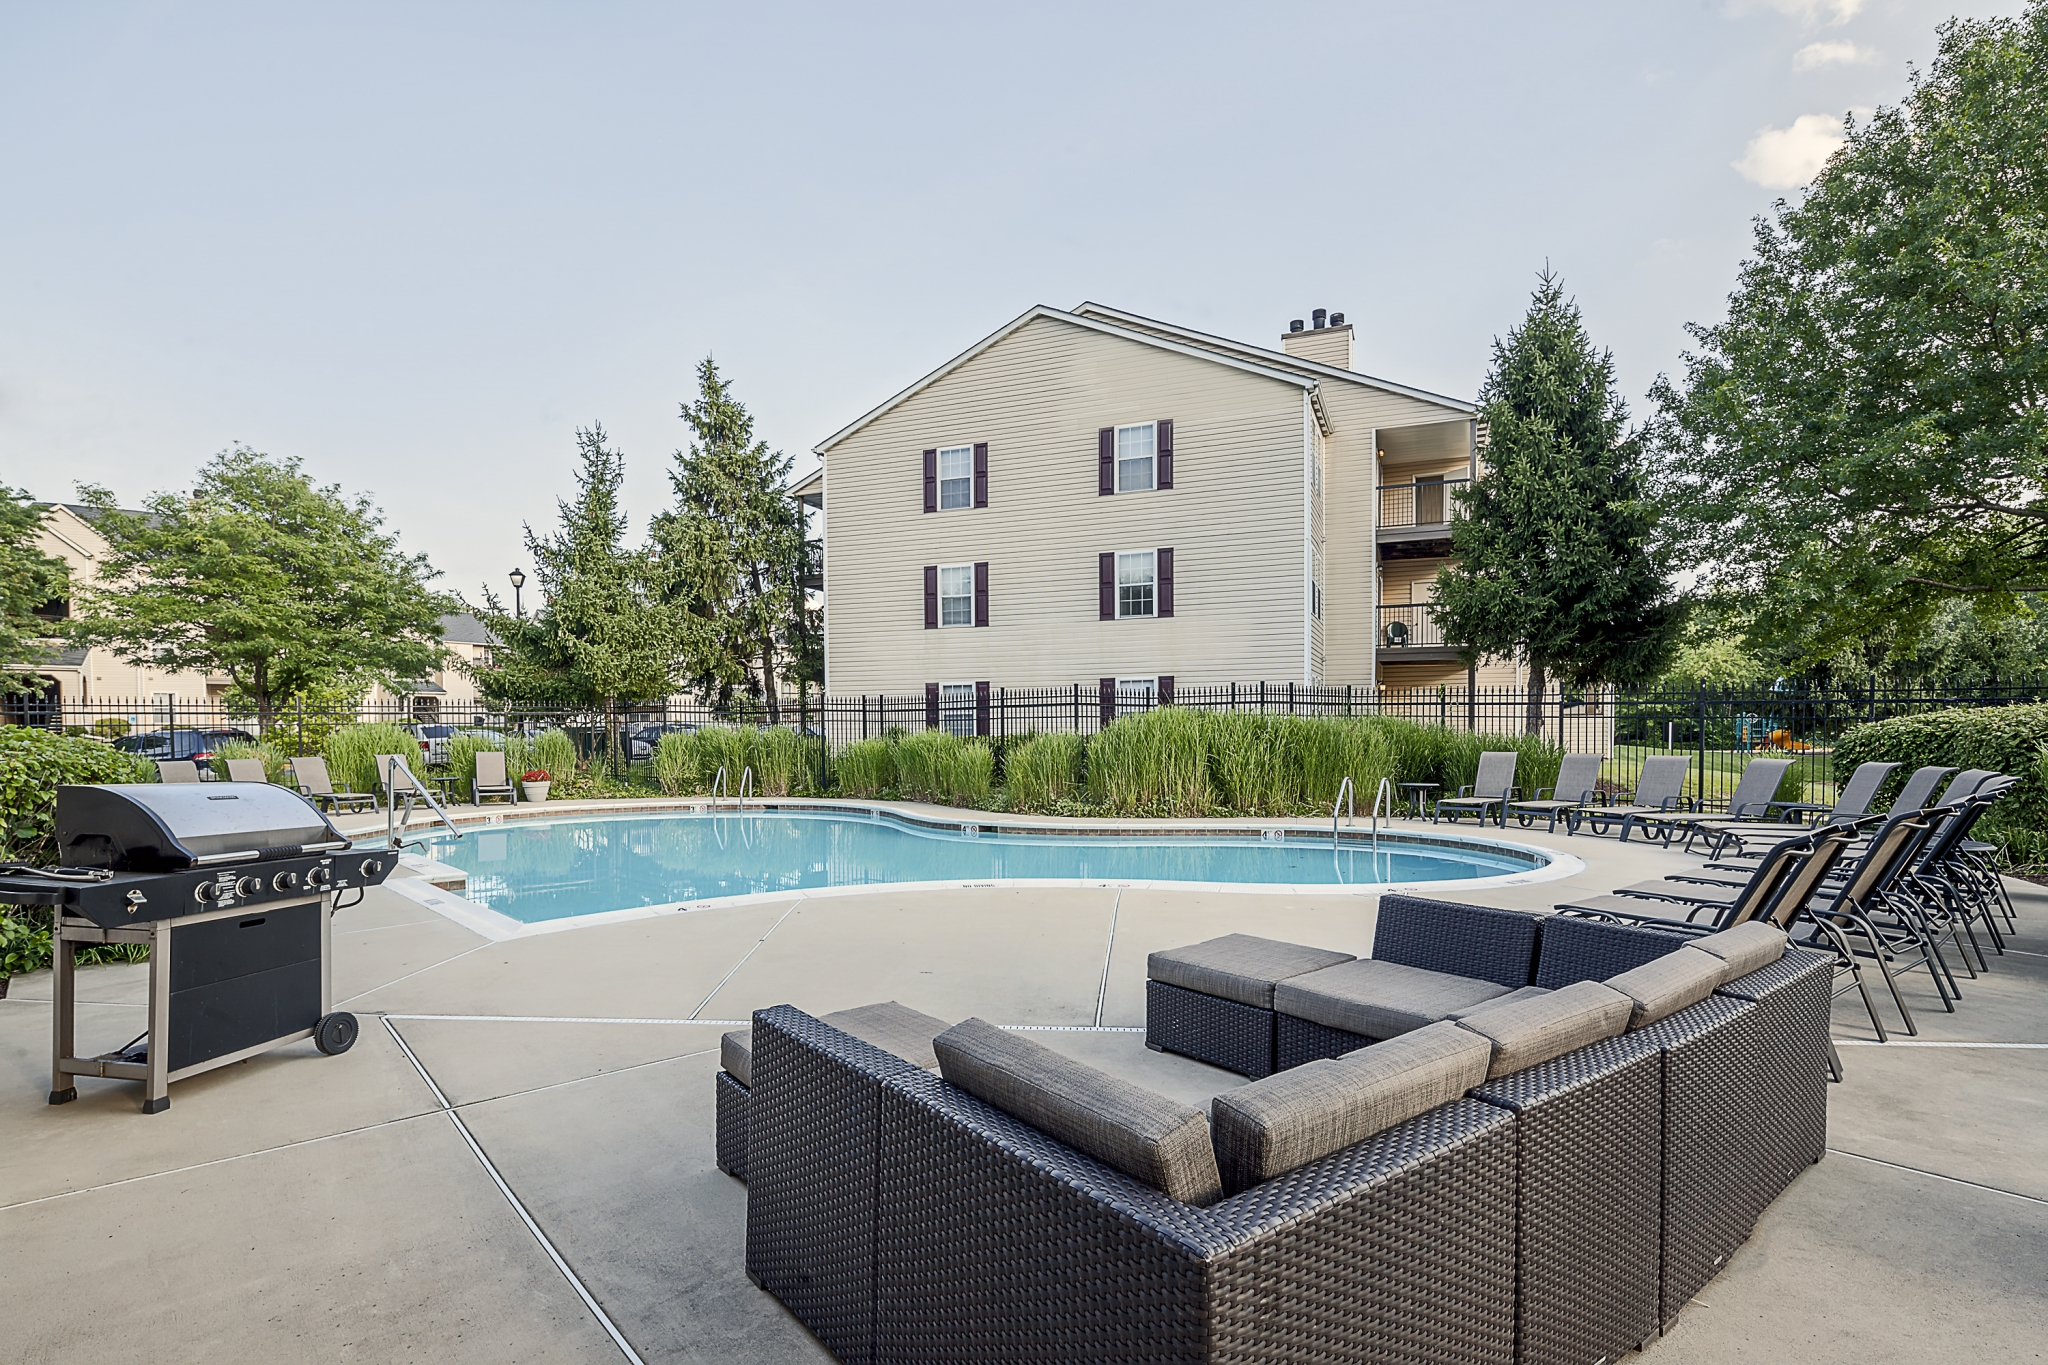 Saybrooke | Apartments For Rent in Gaithersburg, MD | Pool with Sundeck